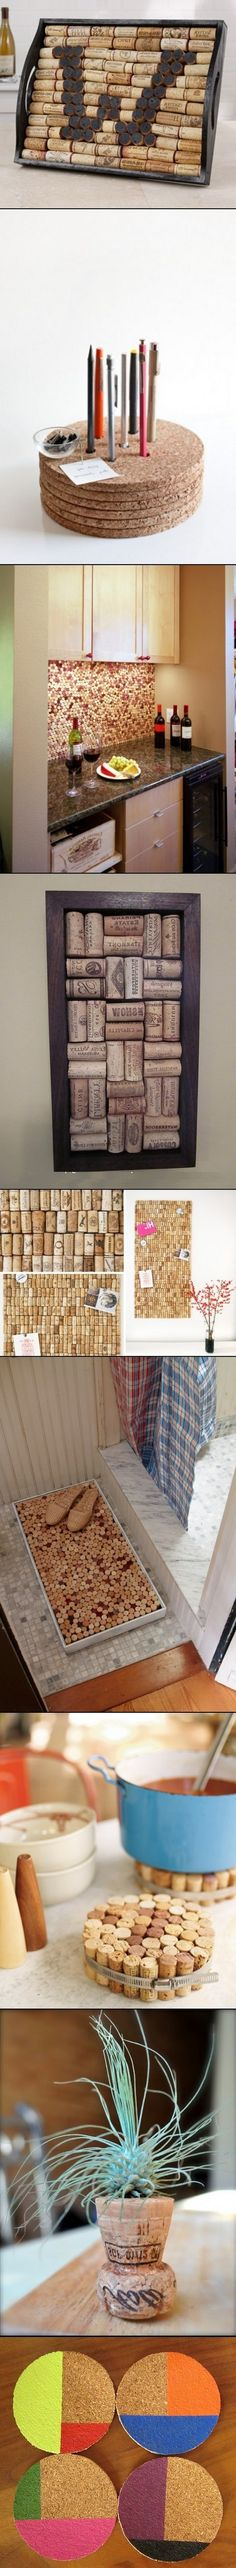 I love the cork background for the kitchen area, behind the sink - so creative and cute!